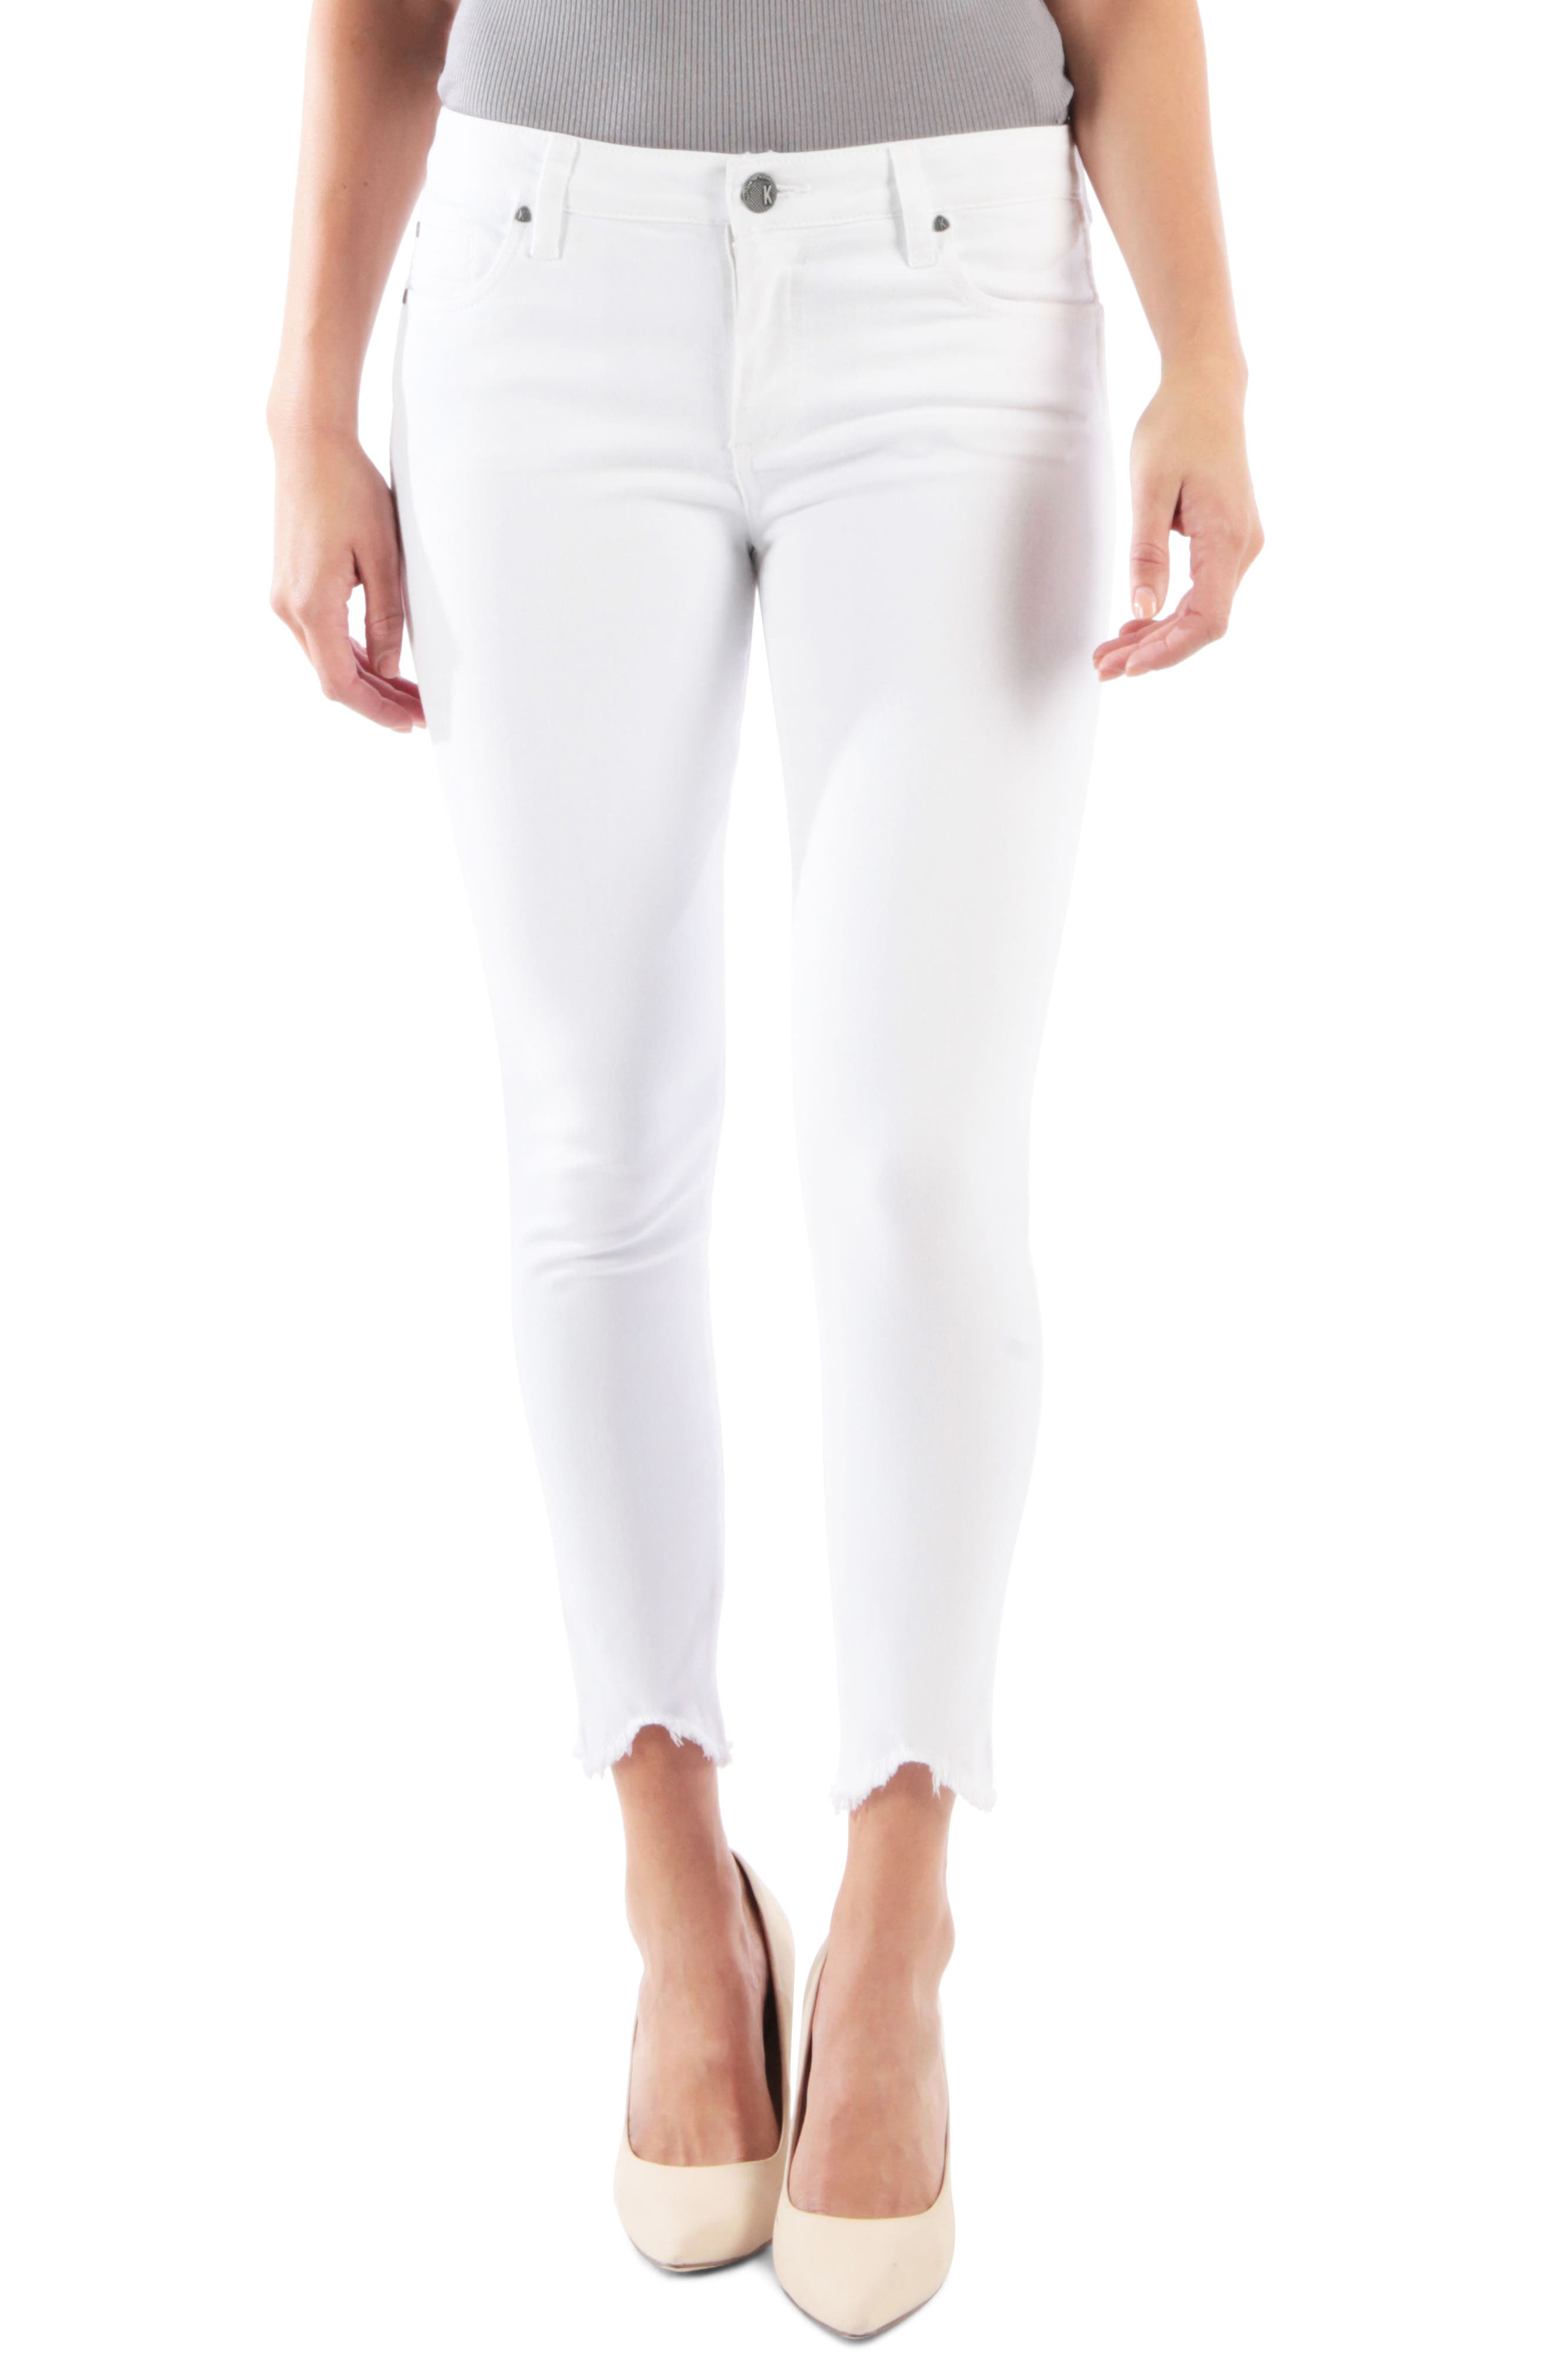 KUT FROM THE KLOTH, Connie Ankle Skinny Jeans, Main thumbnail 1, color, OPTIC WHITE